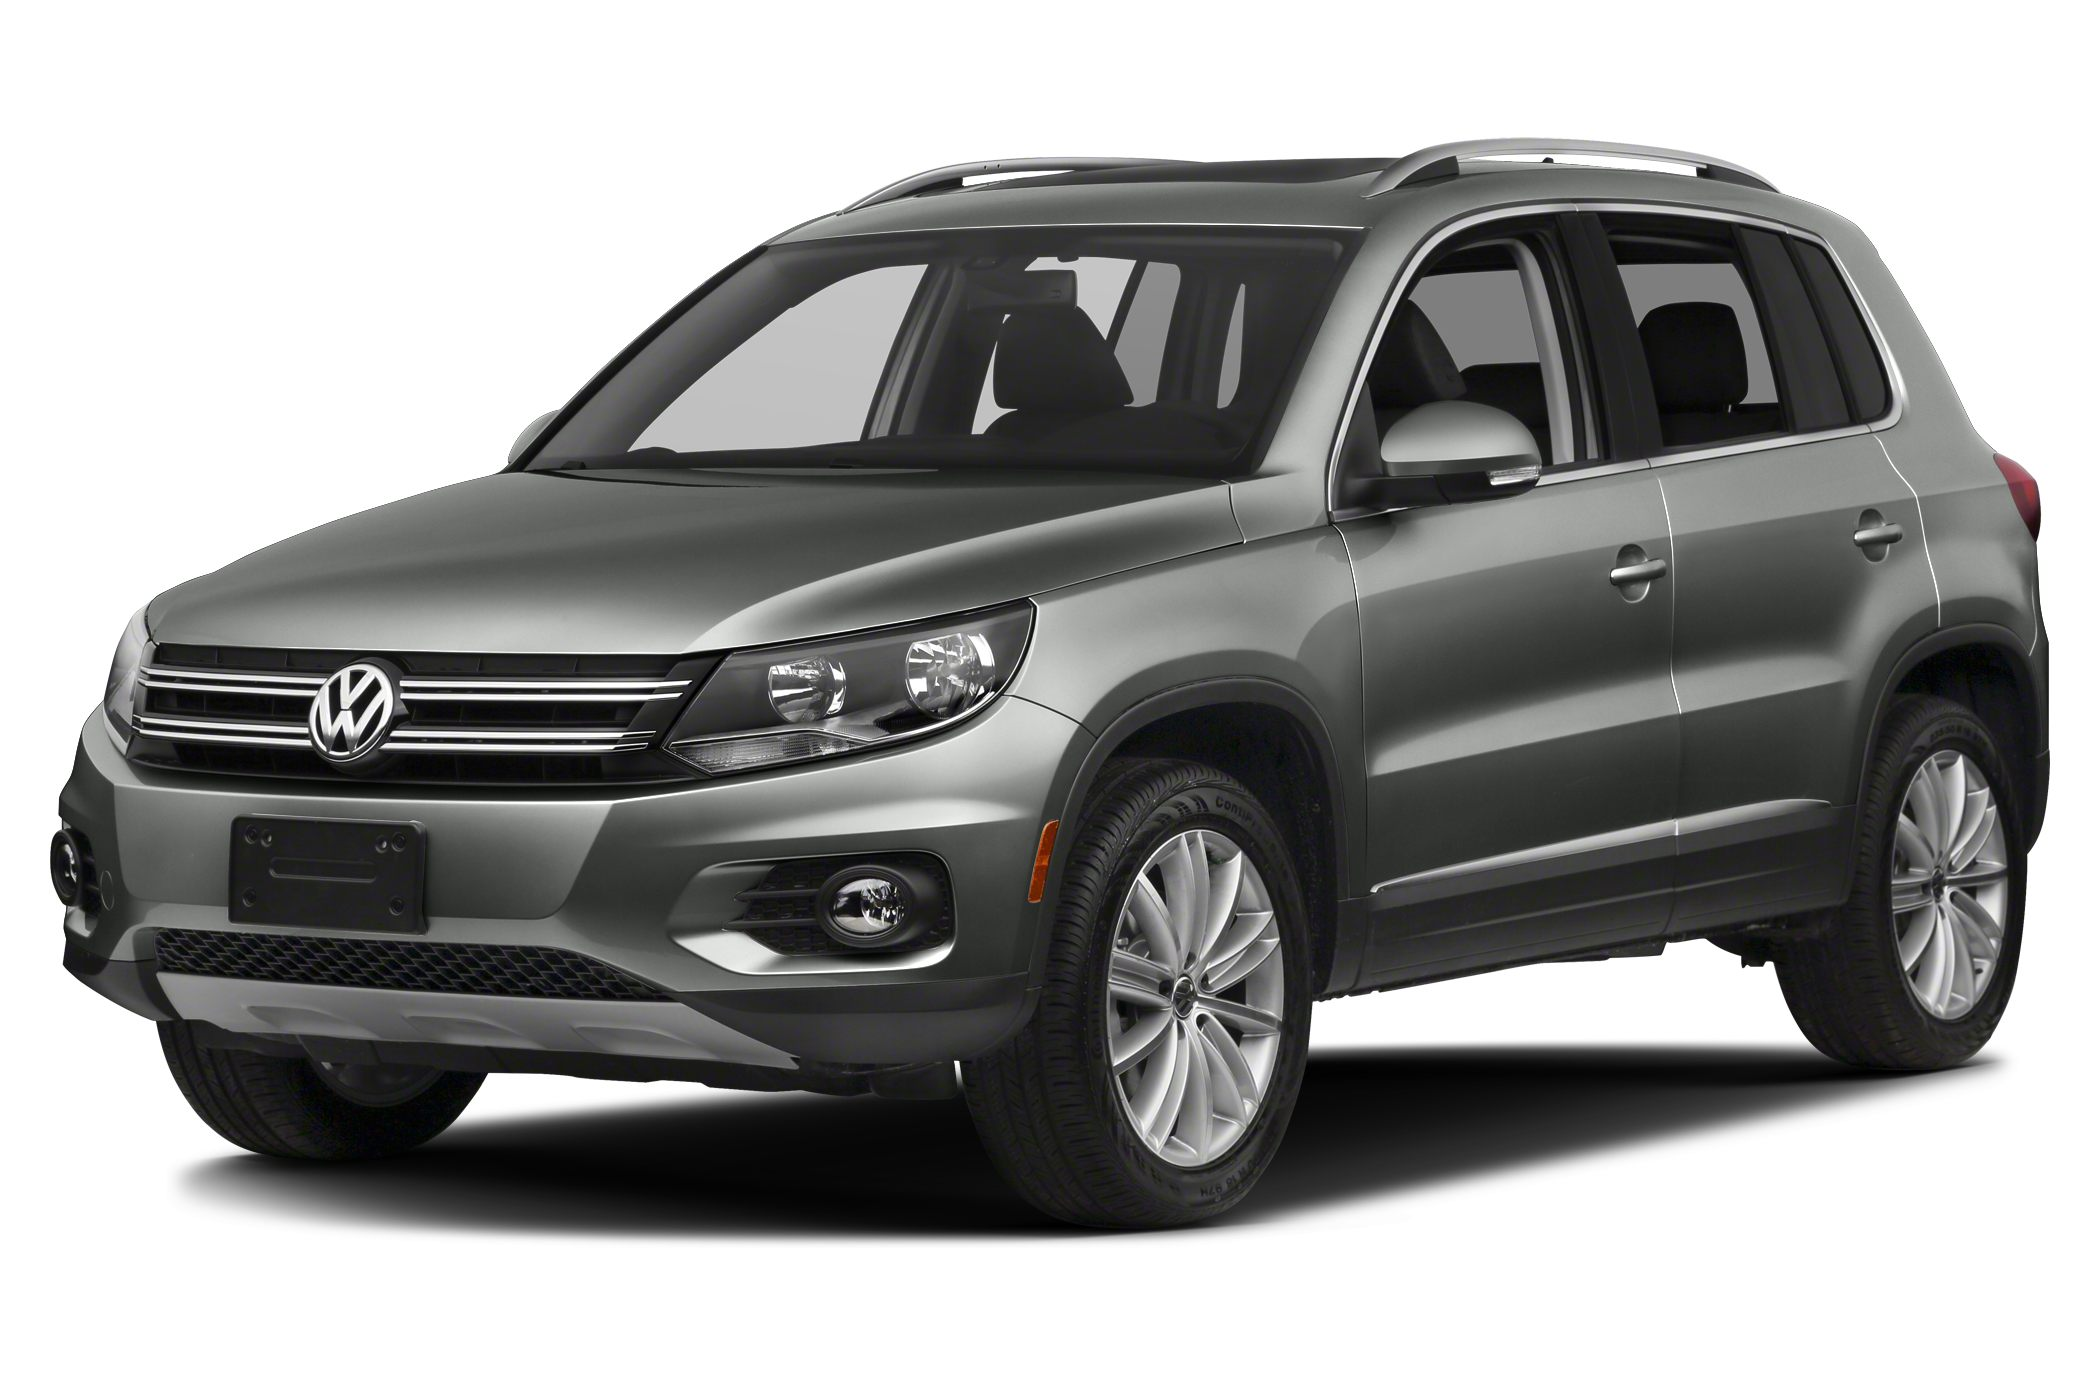 2012 Volkswagen Tiguan S Check out this 2012 Volkswagen Tiguan S It has a Automatic transmission